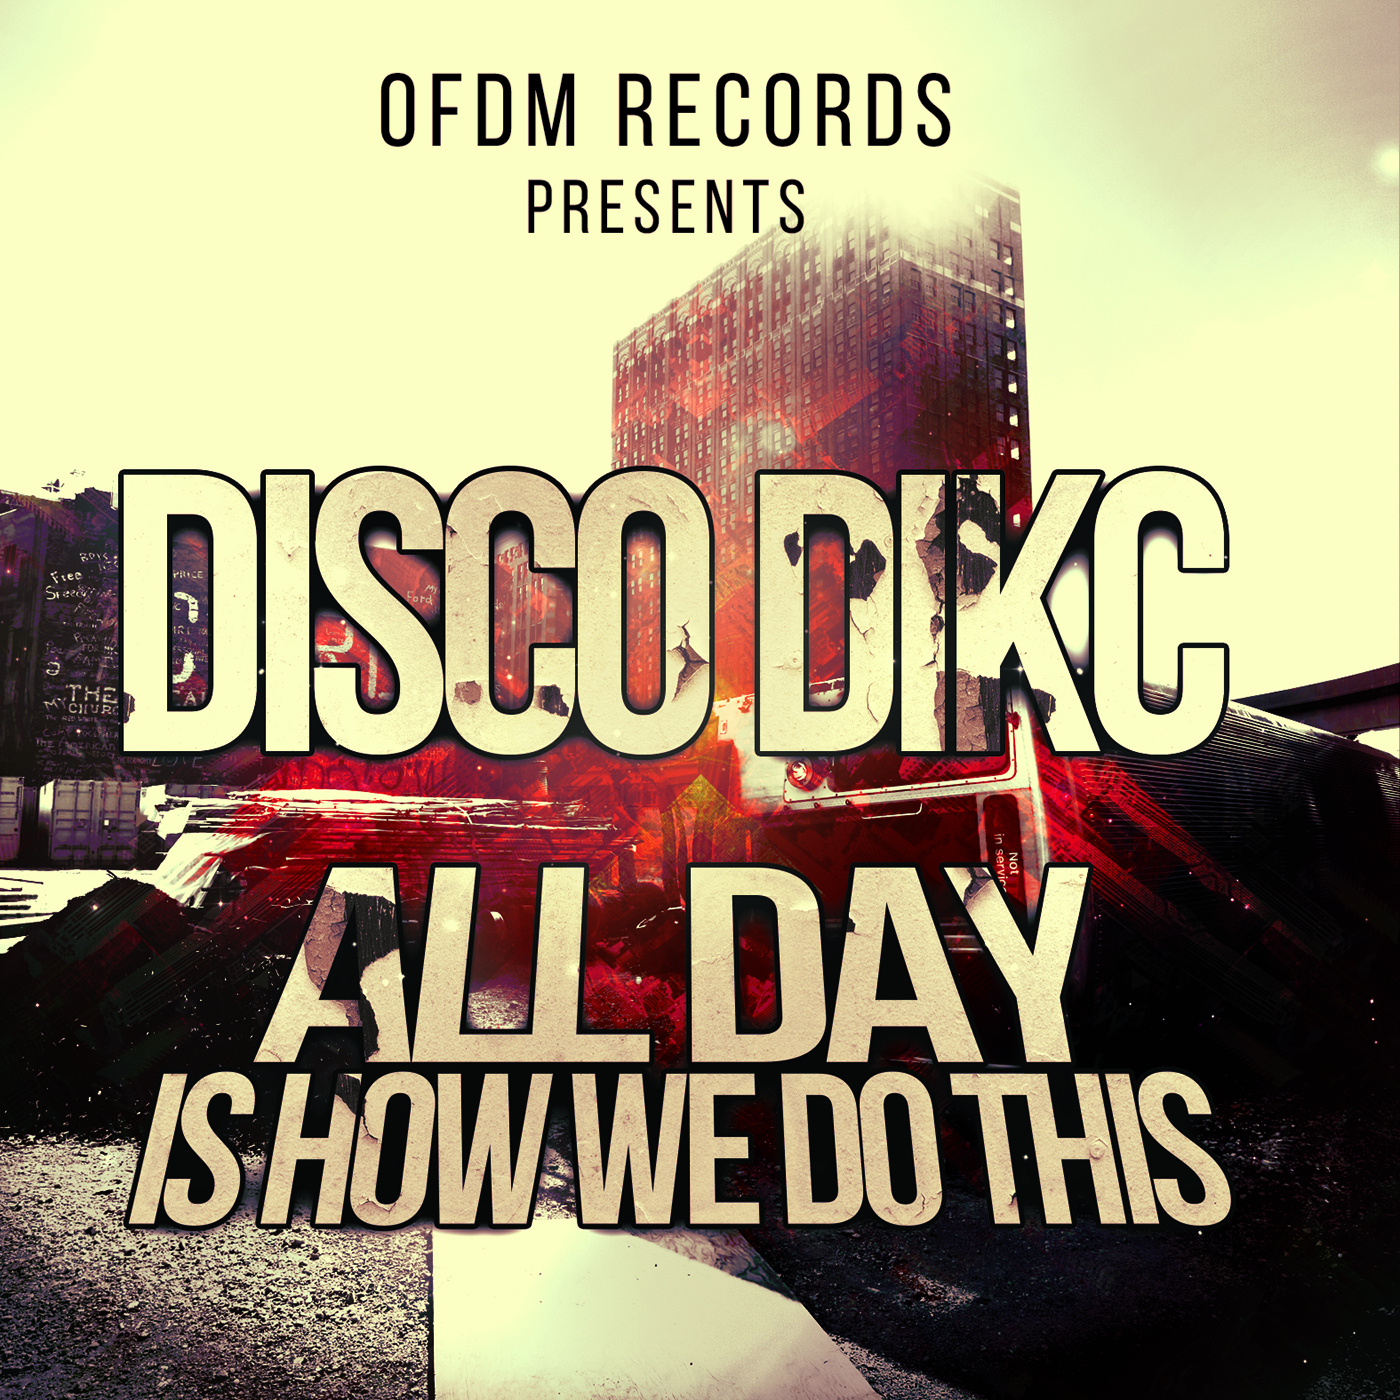 [OFDM008] DISCO DIKC - All Day Is How We Do This.jpg